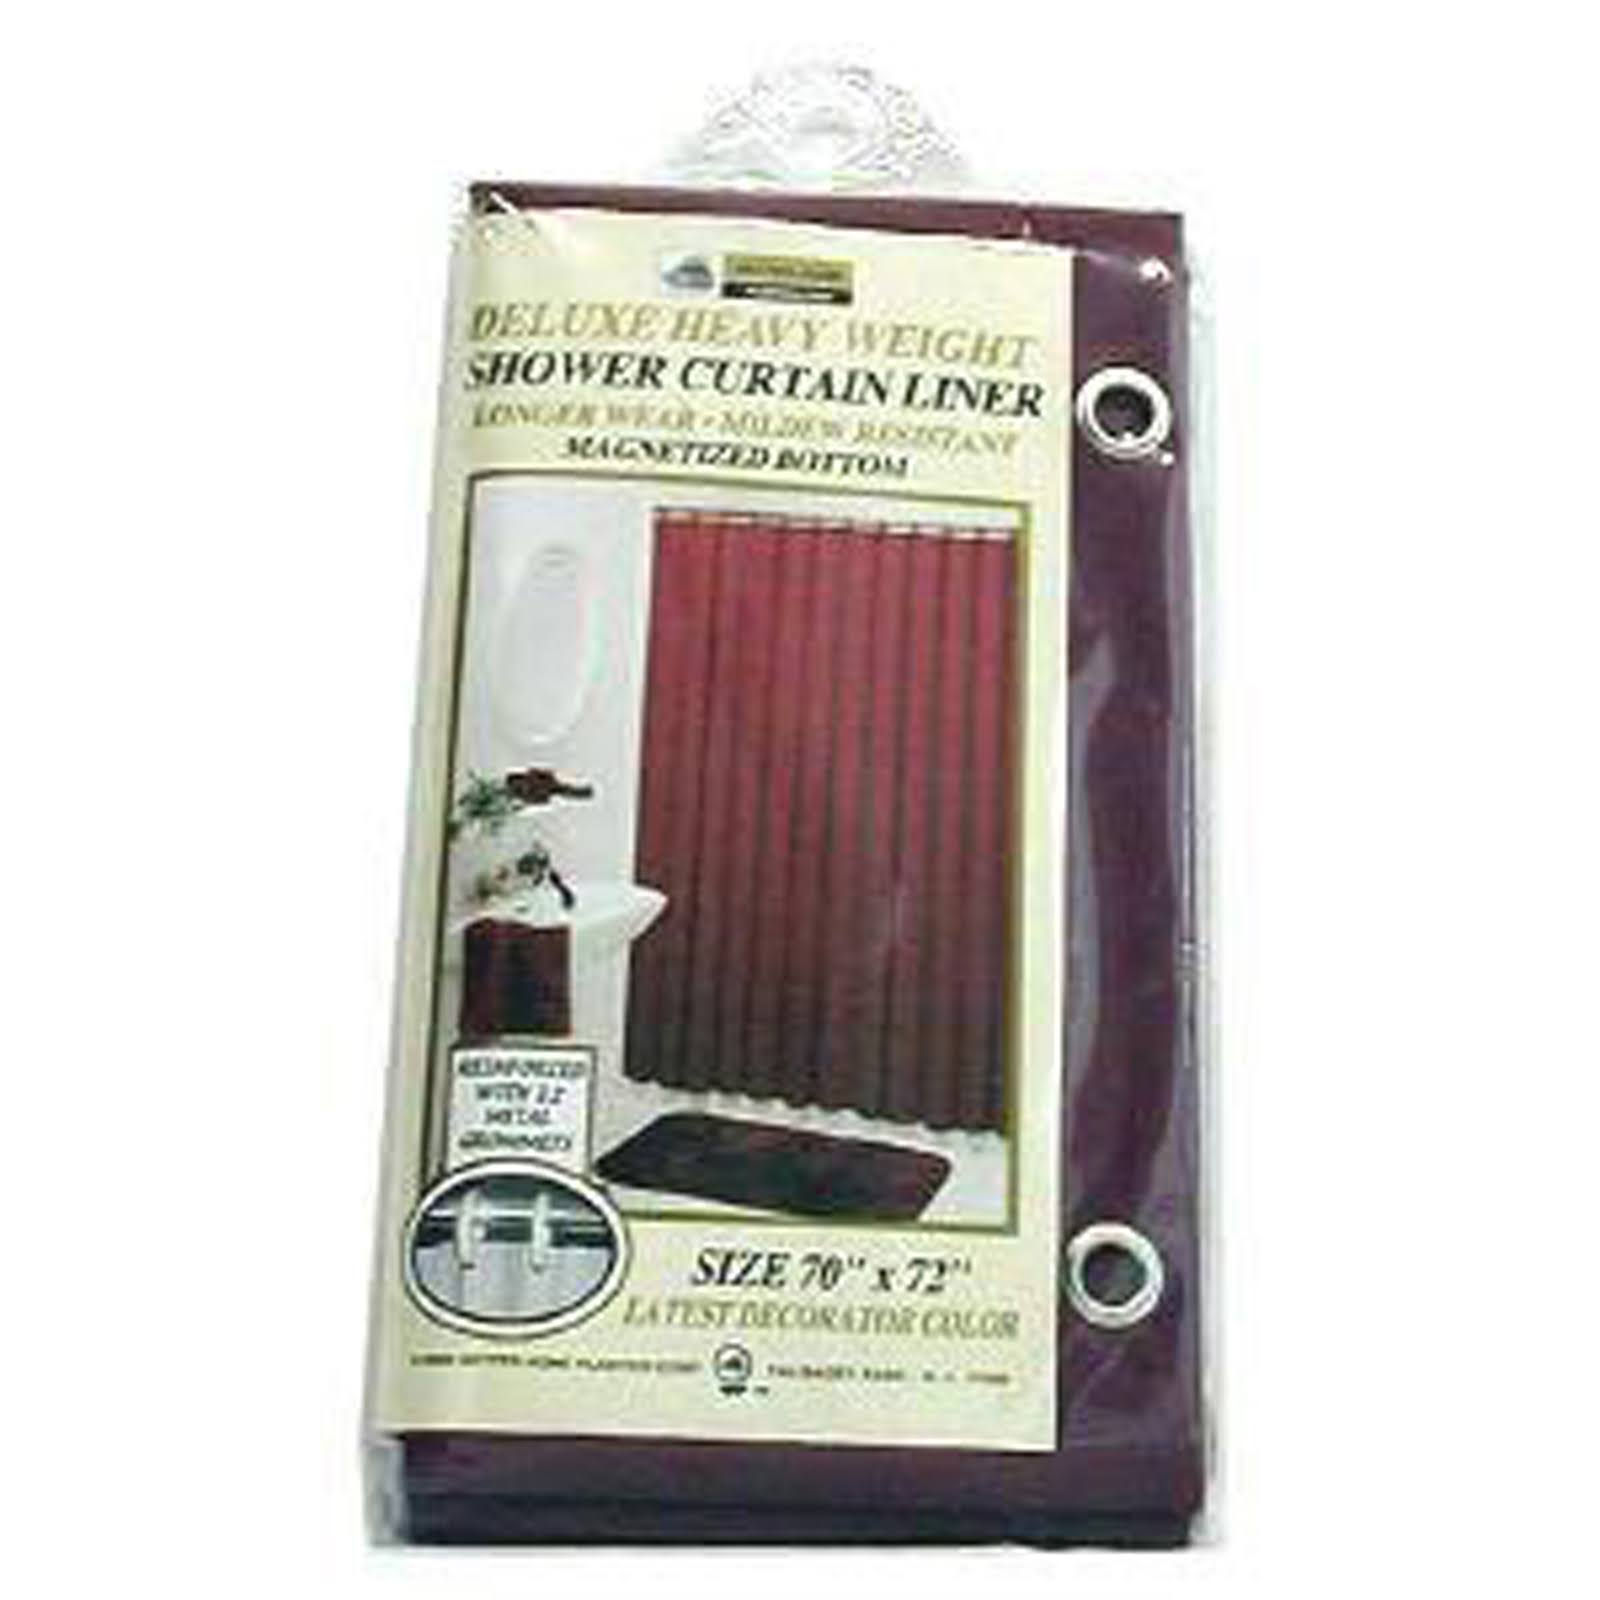 New Vinyl Shower Curtain Liner with Magnets - Burgundy